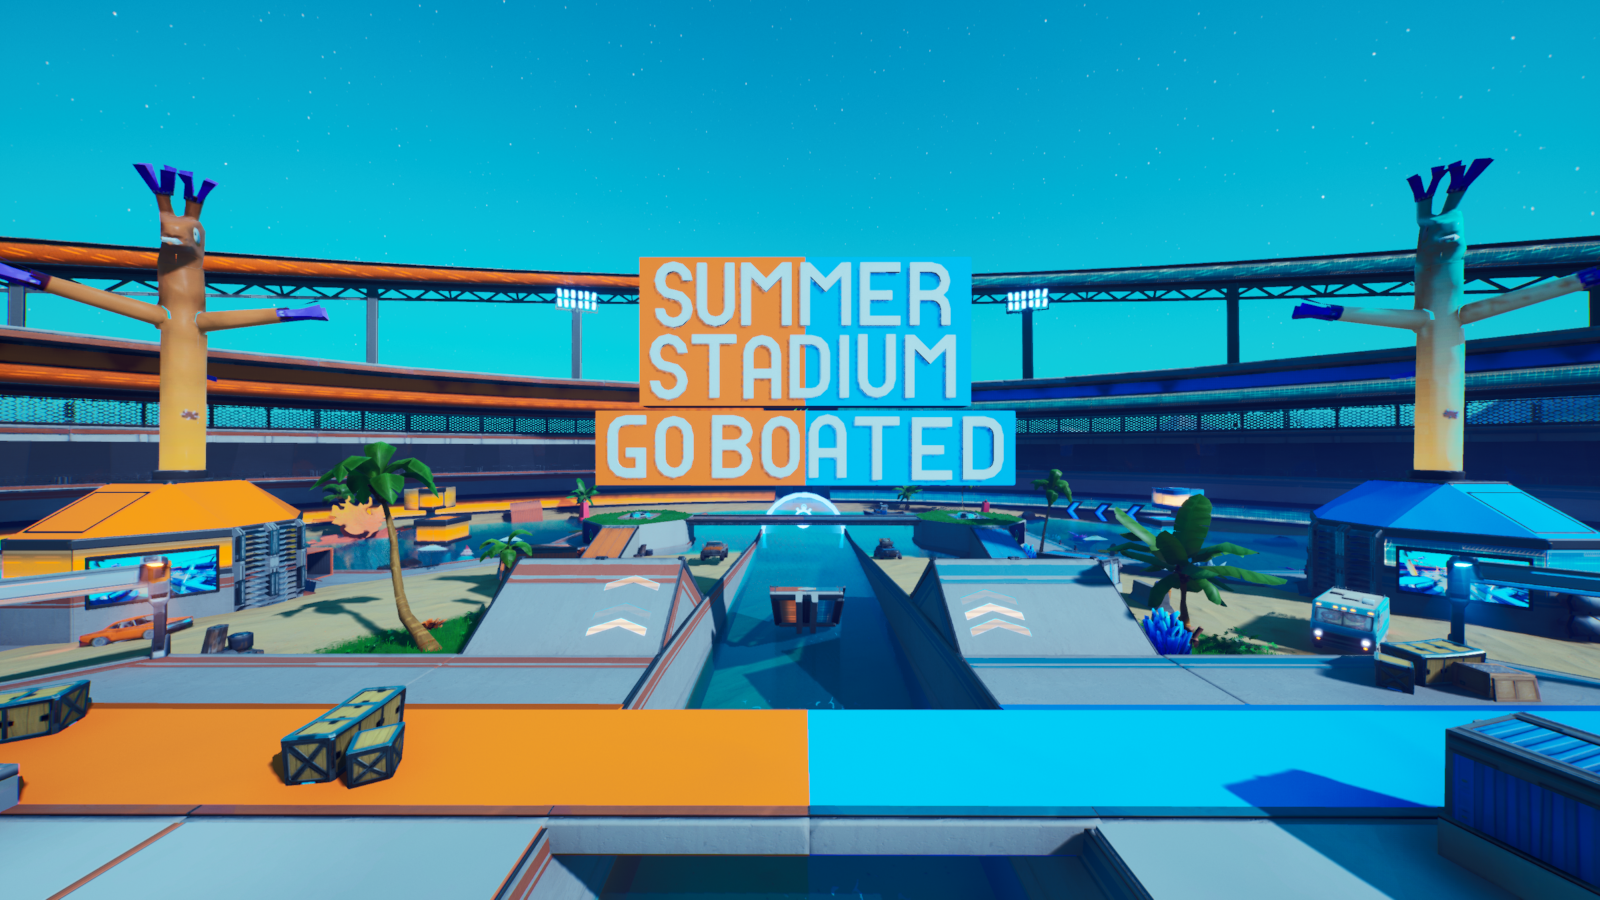 🏝️SUMMER STADIUM🏝️   GO BOATED! 9887-3168-3580 by dfault_skin